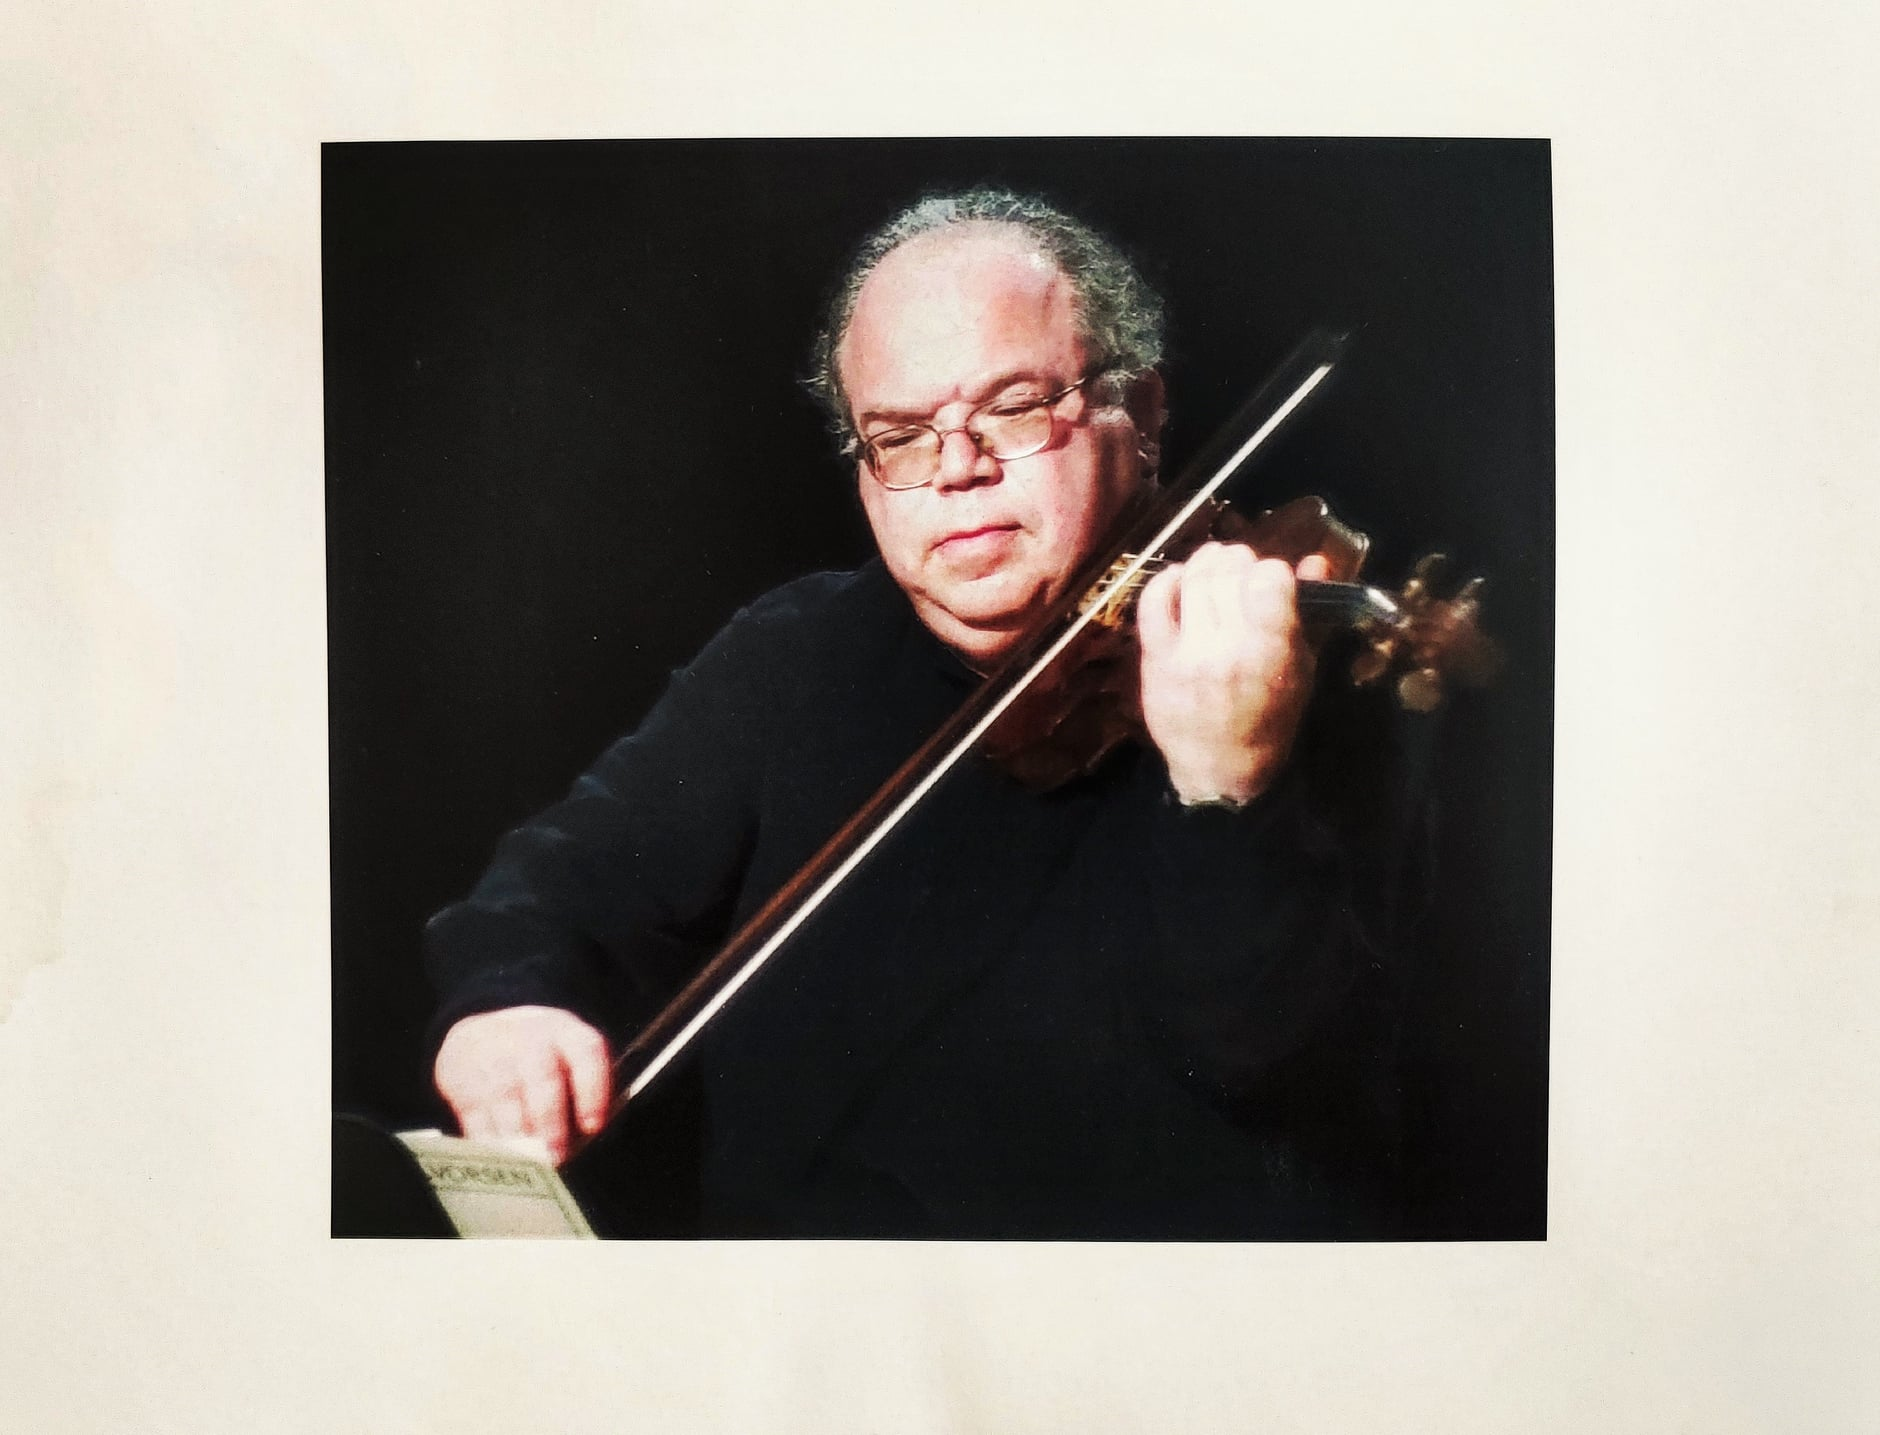 Death of an enterprising US concertmaster, 74